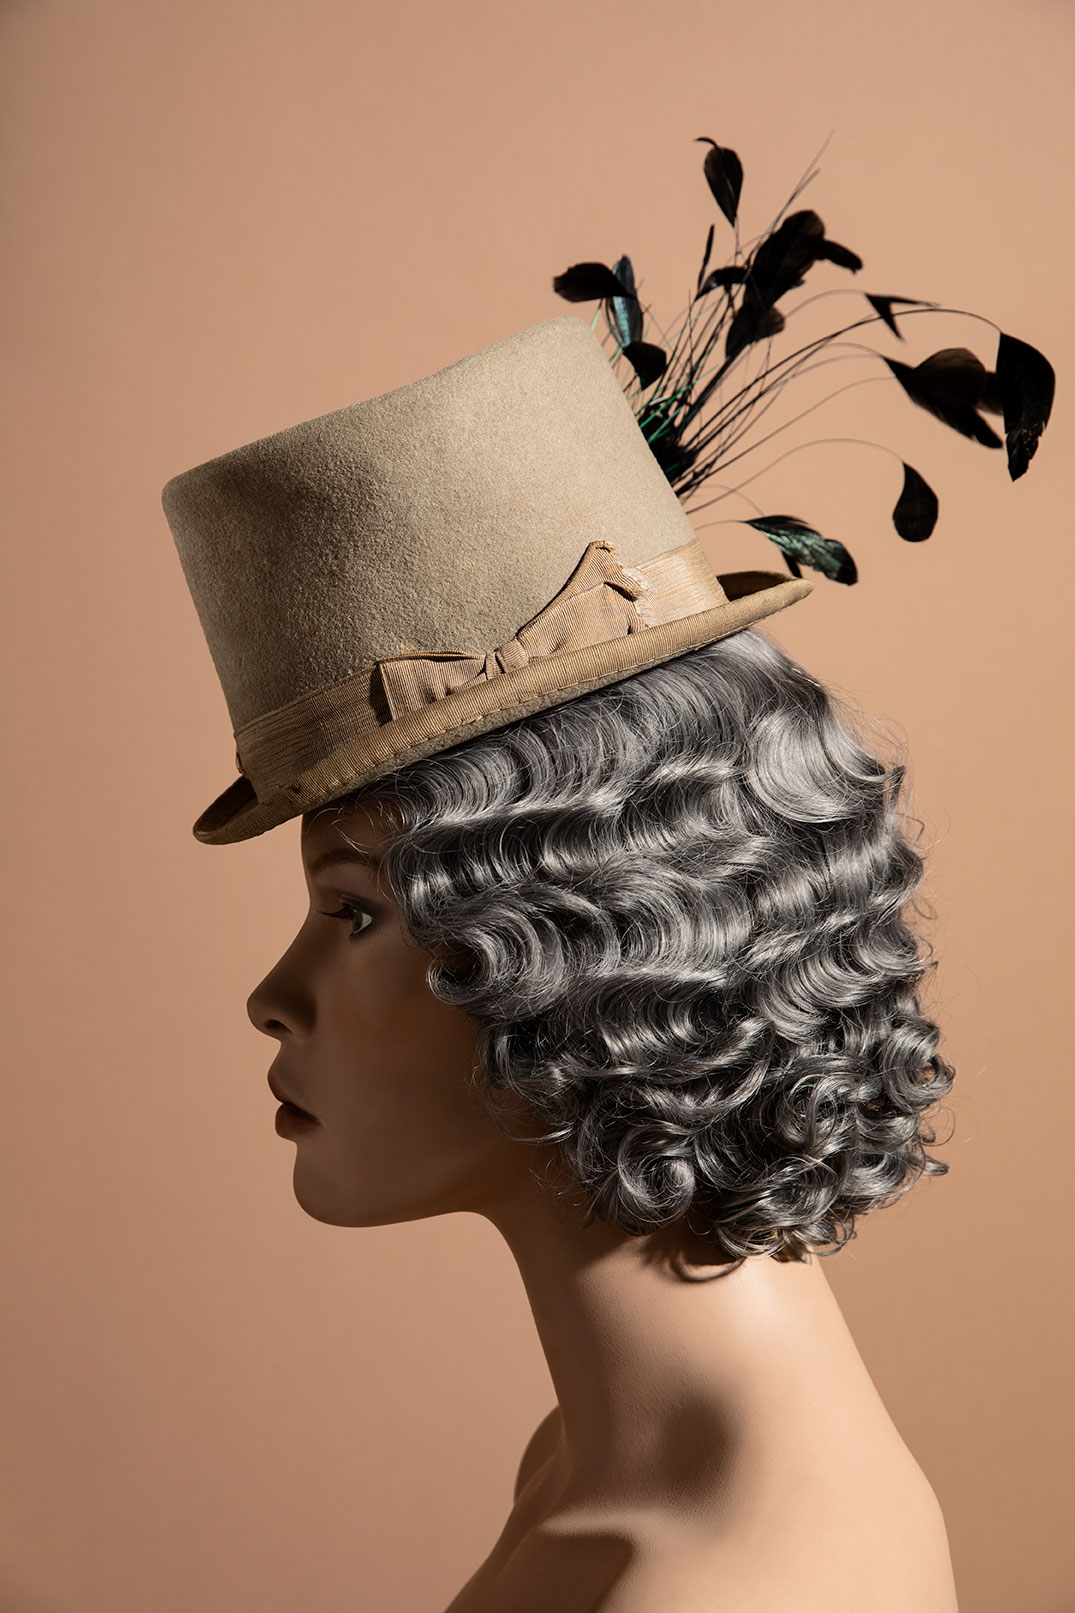 Victorian top hat for women - 1880s-1890s  Found in my Great-Grandmother's home